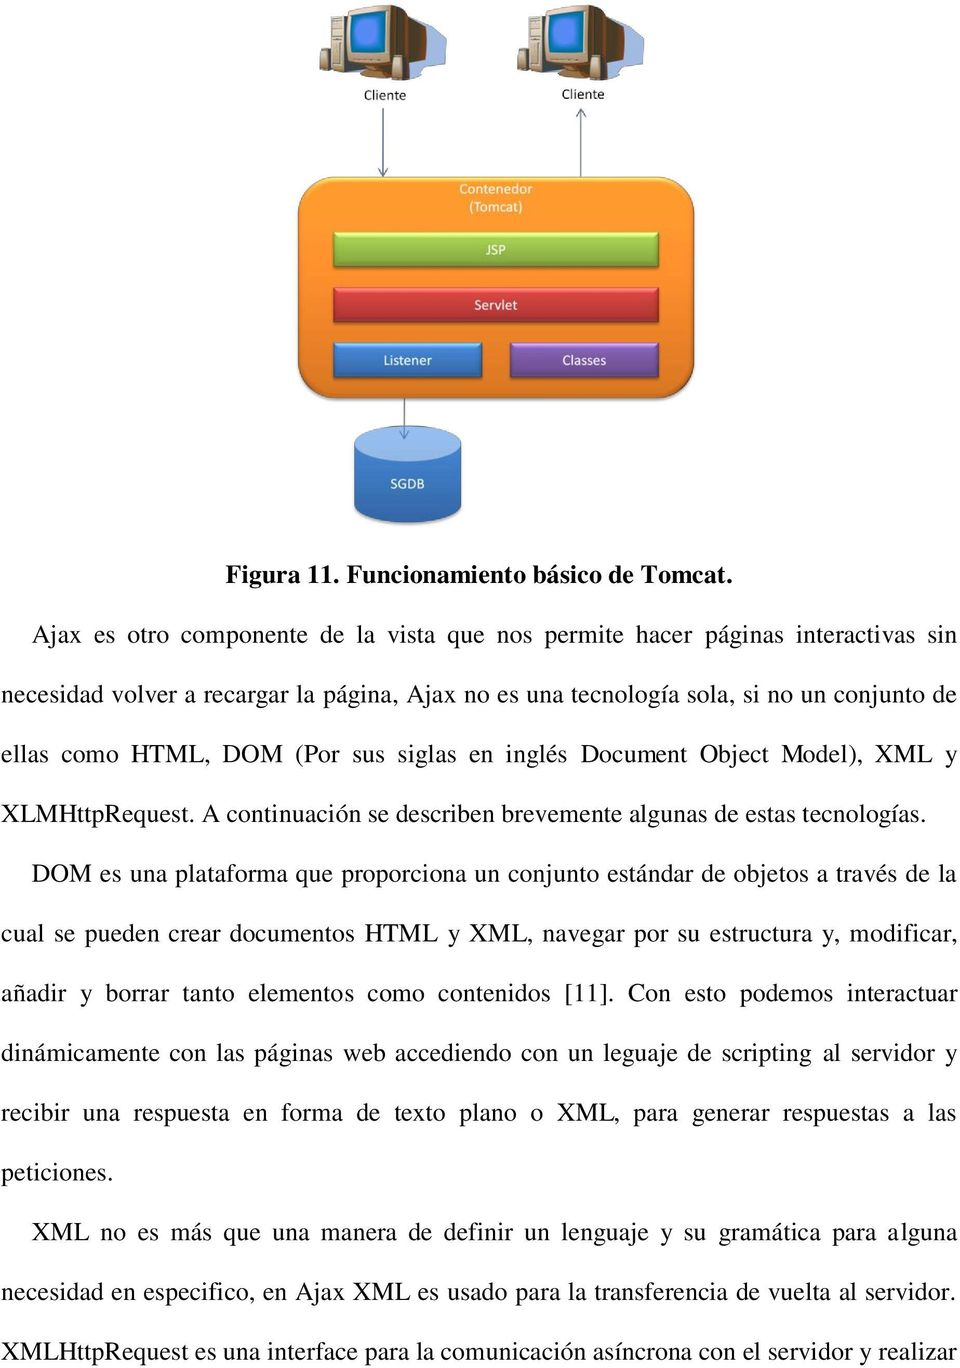 (Por sus siglas en inglés Document Object Model), XML y XLMHttpRequest. A continuación se describen brevemente algunas de estas tecnologías.